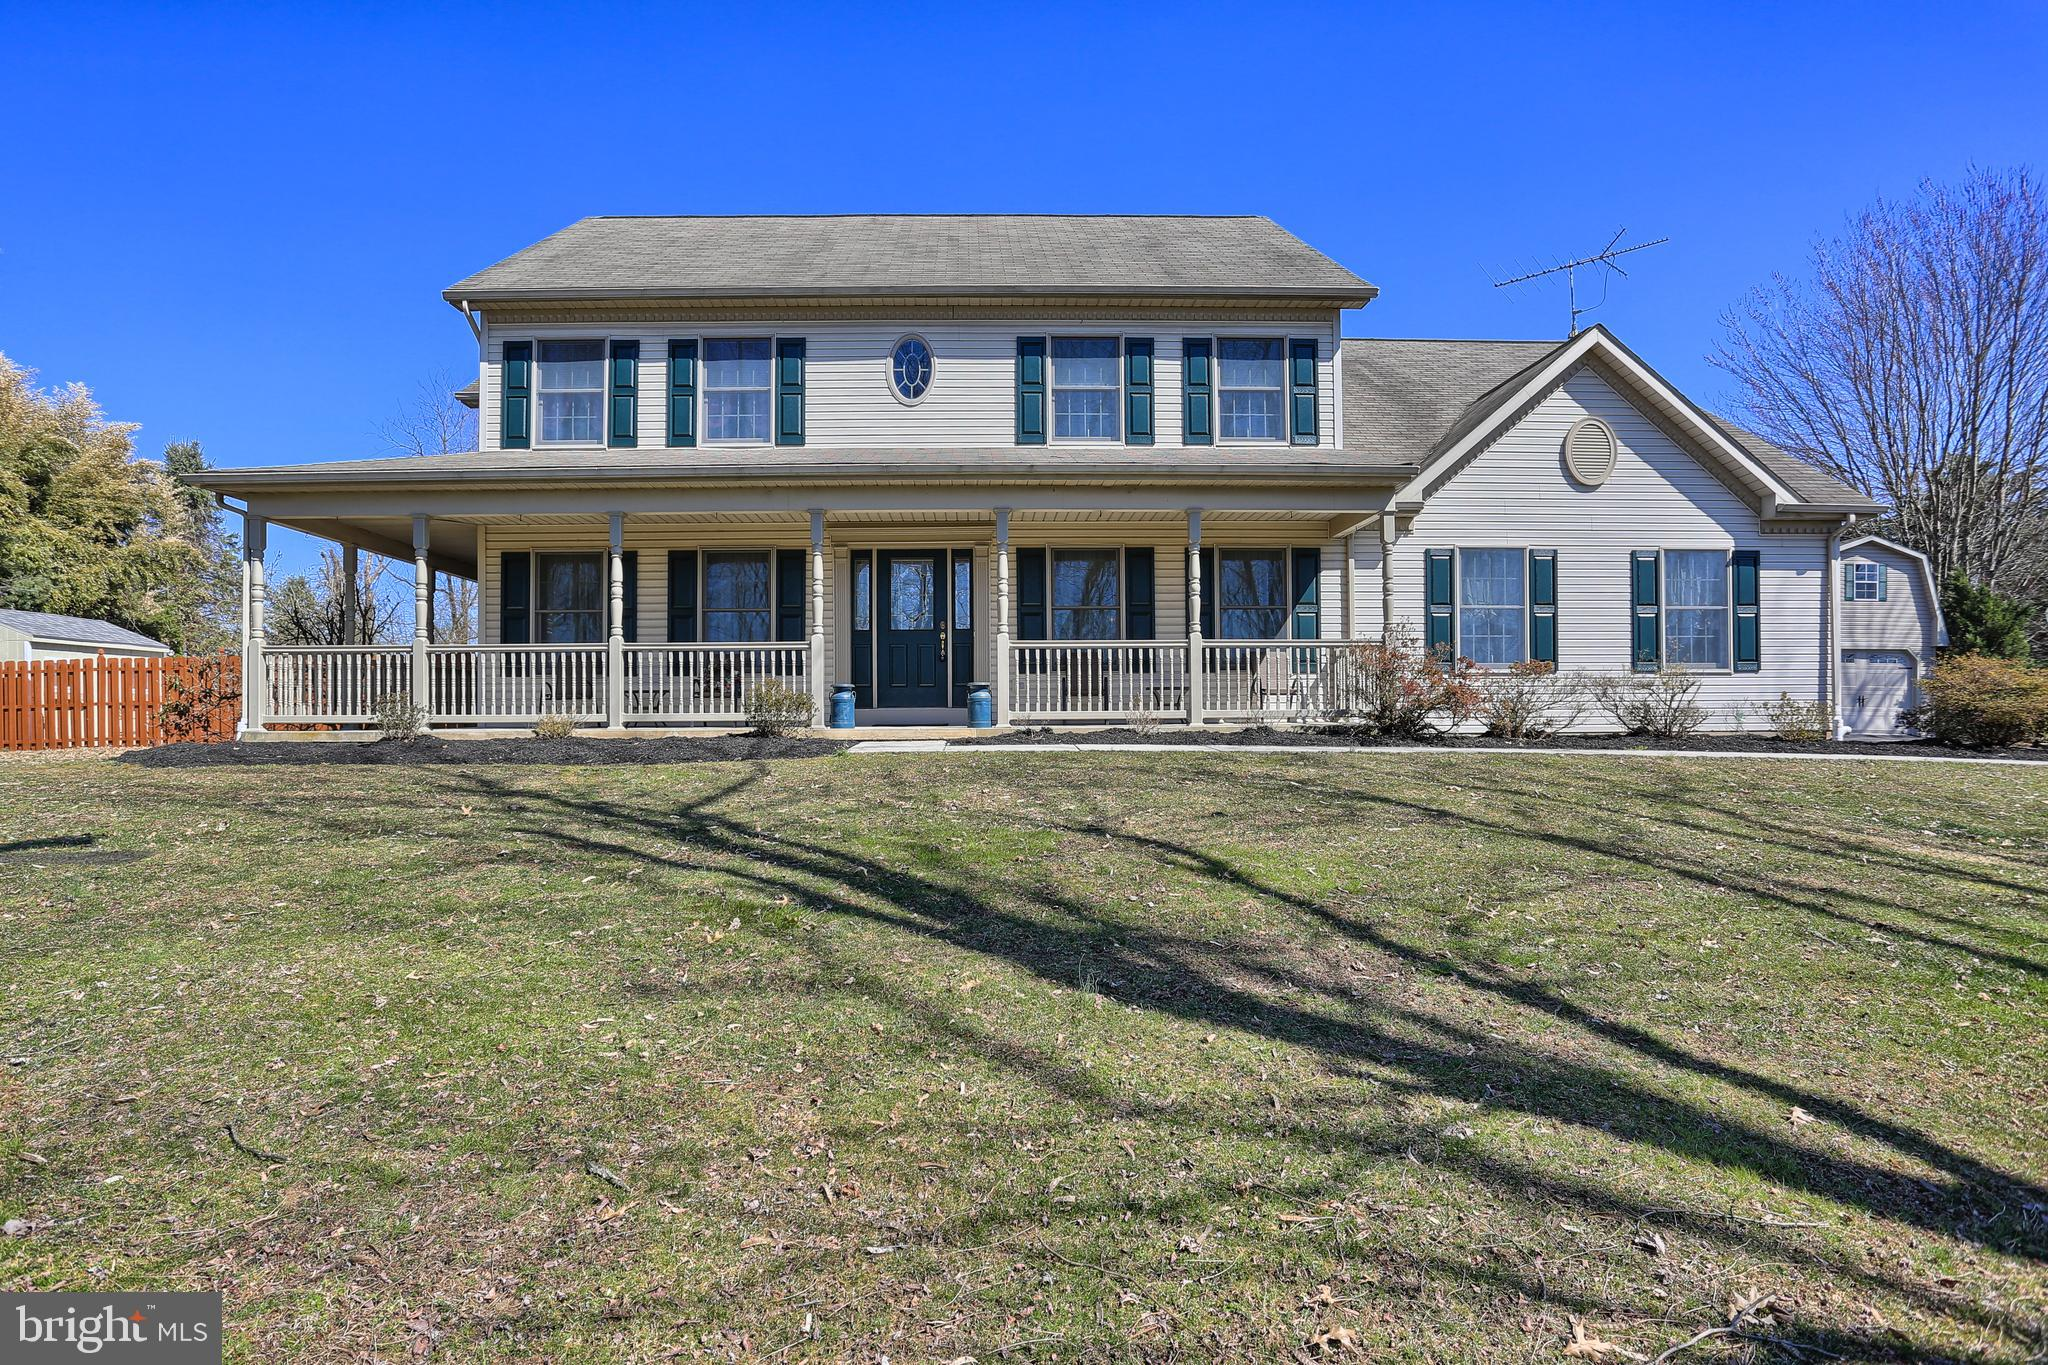 1321 FAWN GROVE ROAD, NEW PARK, PA 17352